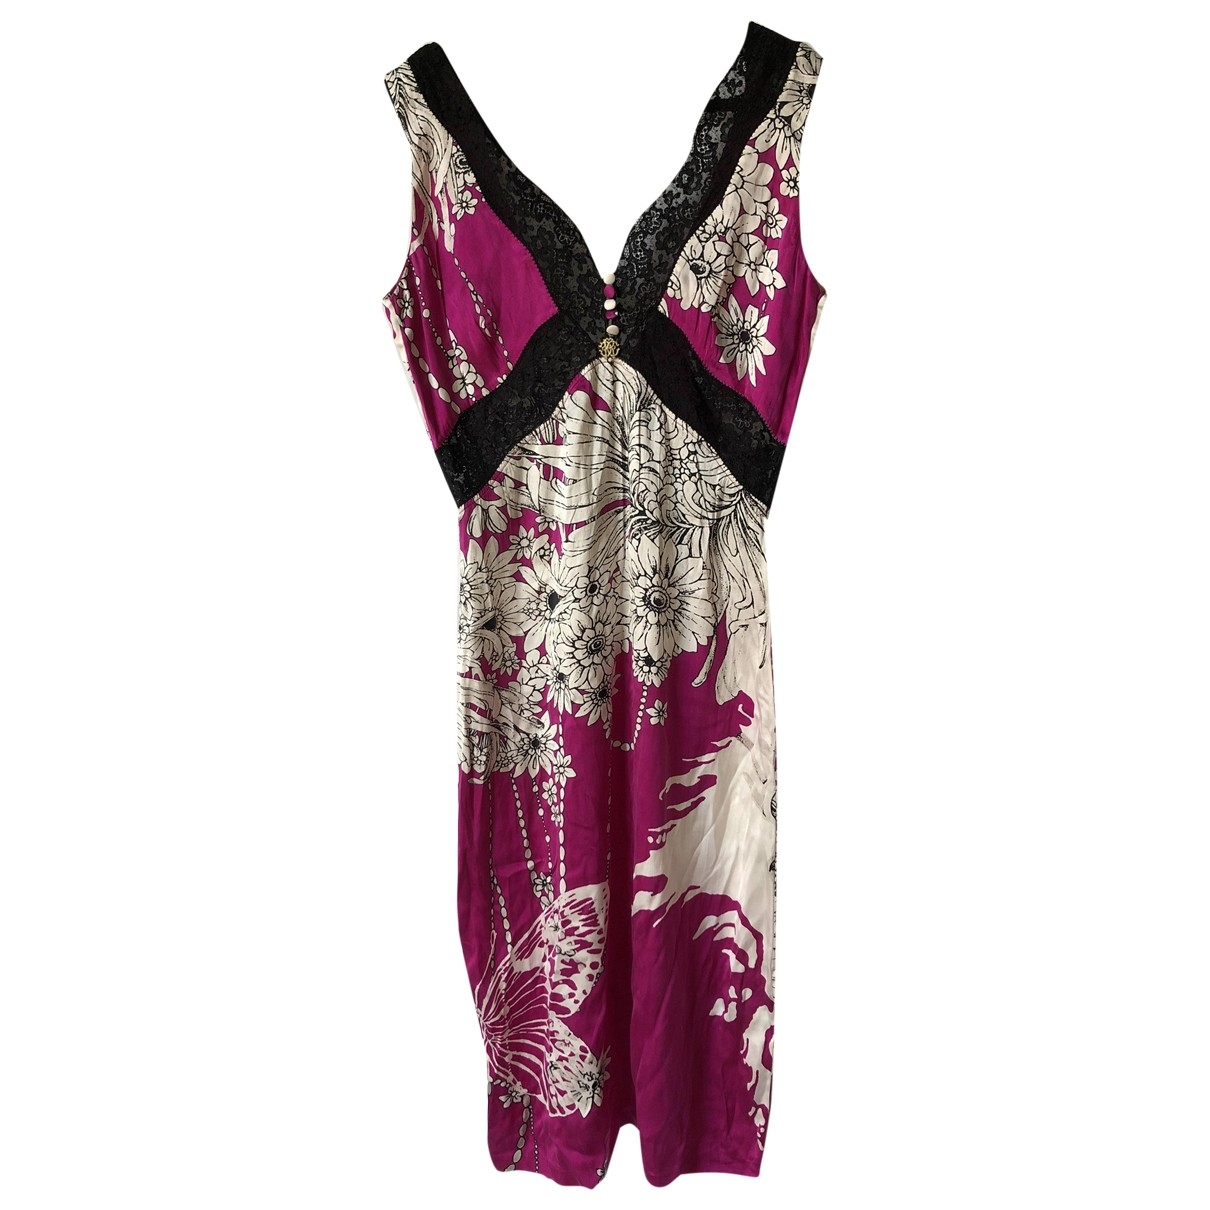 Roberto Cavalli \N Multicolour Silk dress for Women 40 IT